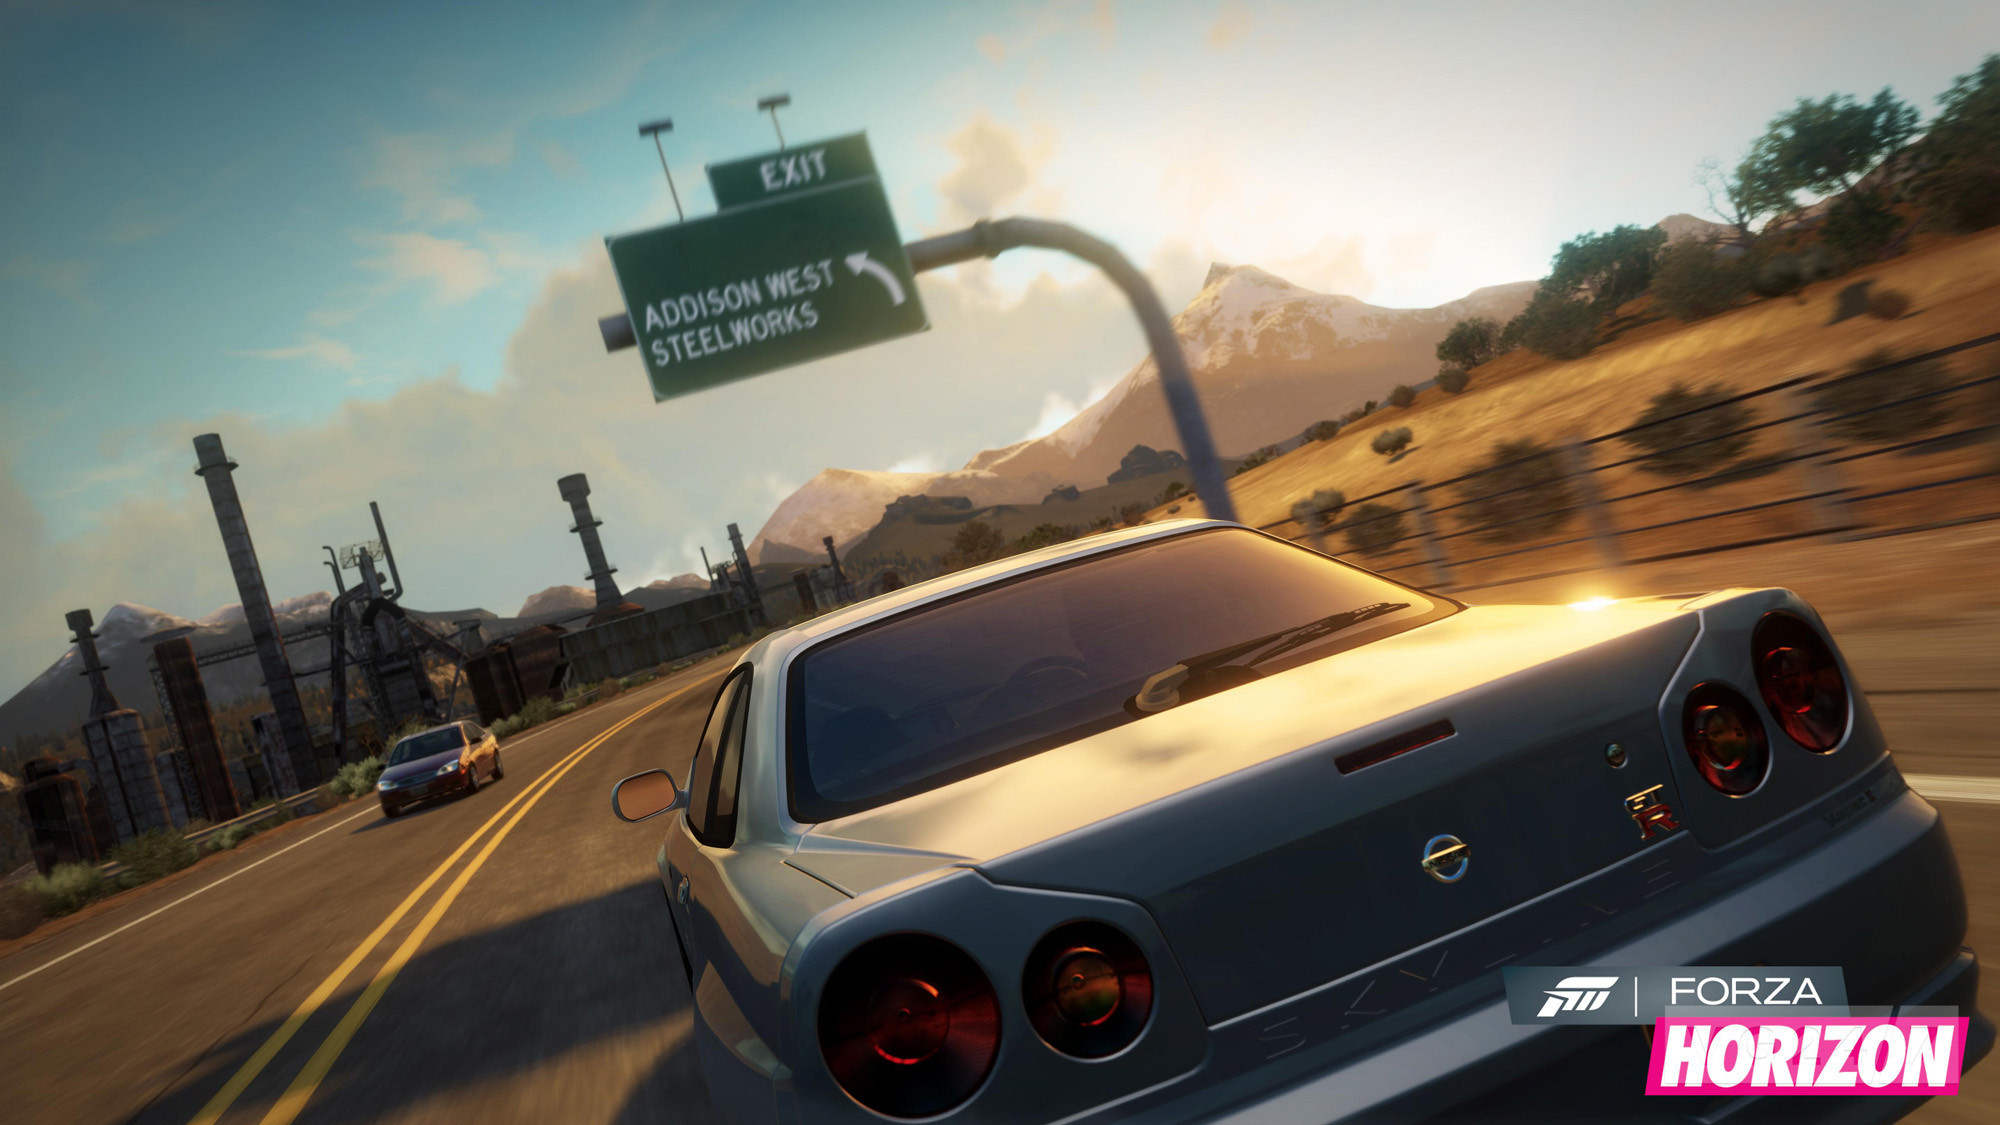 Forza Horizon shots show posh and muscley racers - VG247